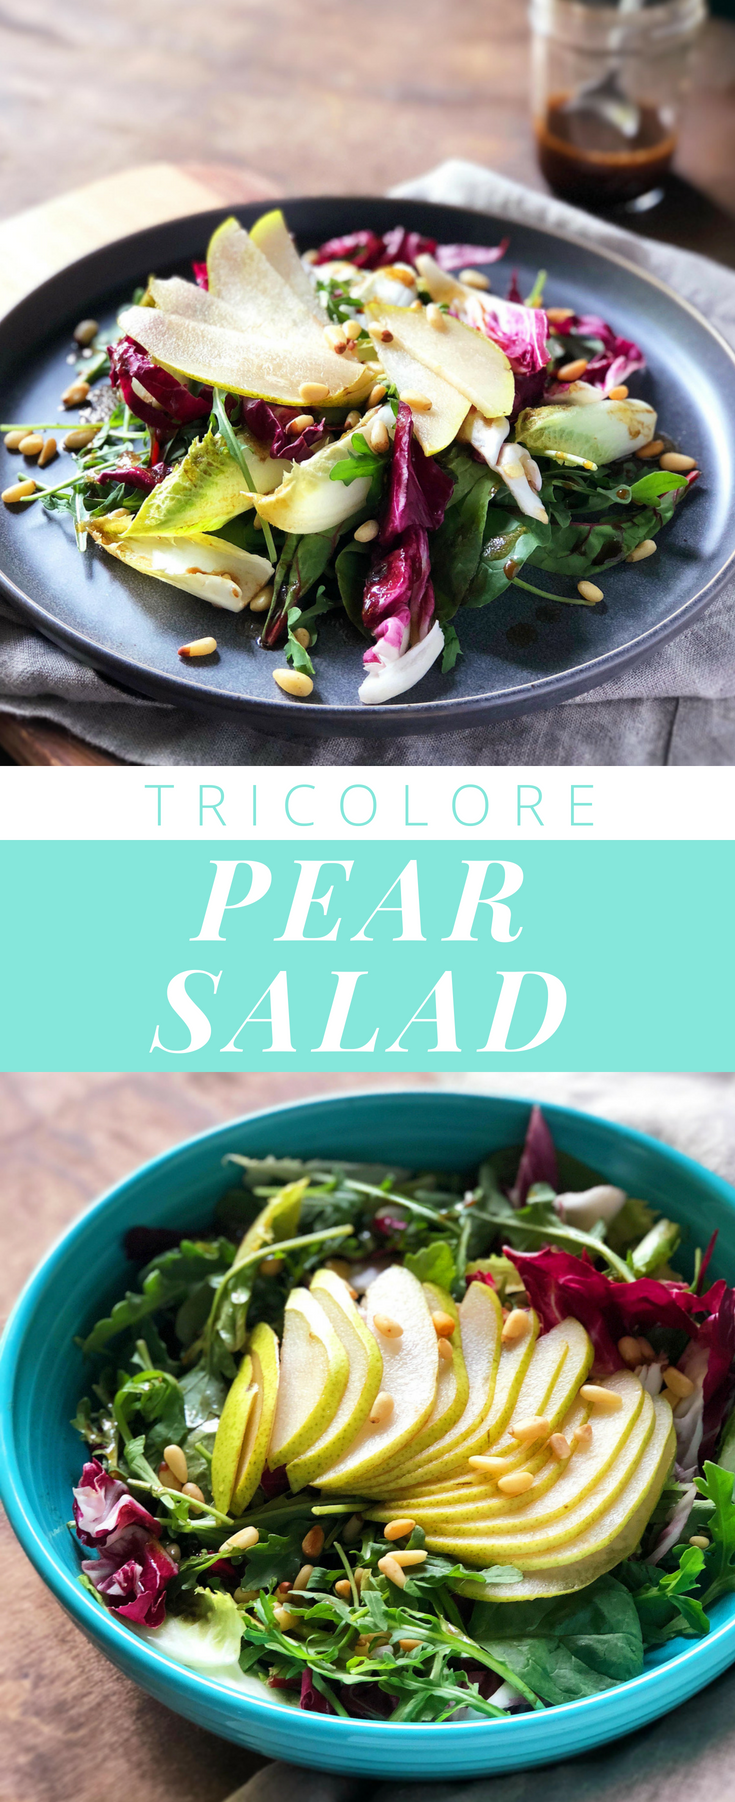 tricolore-pear-salad-pin